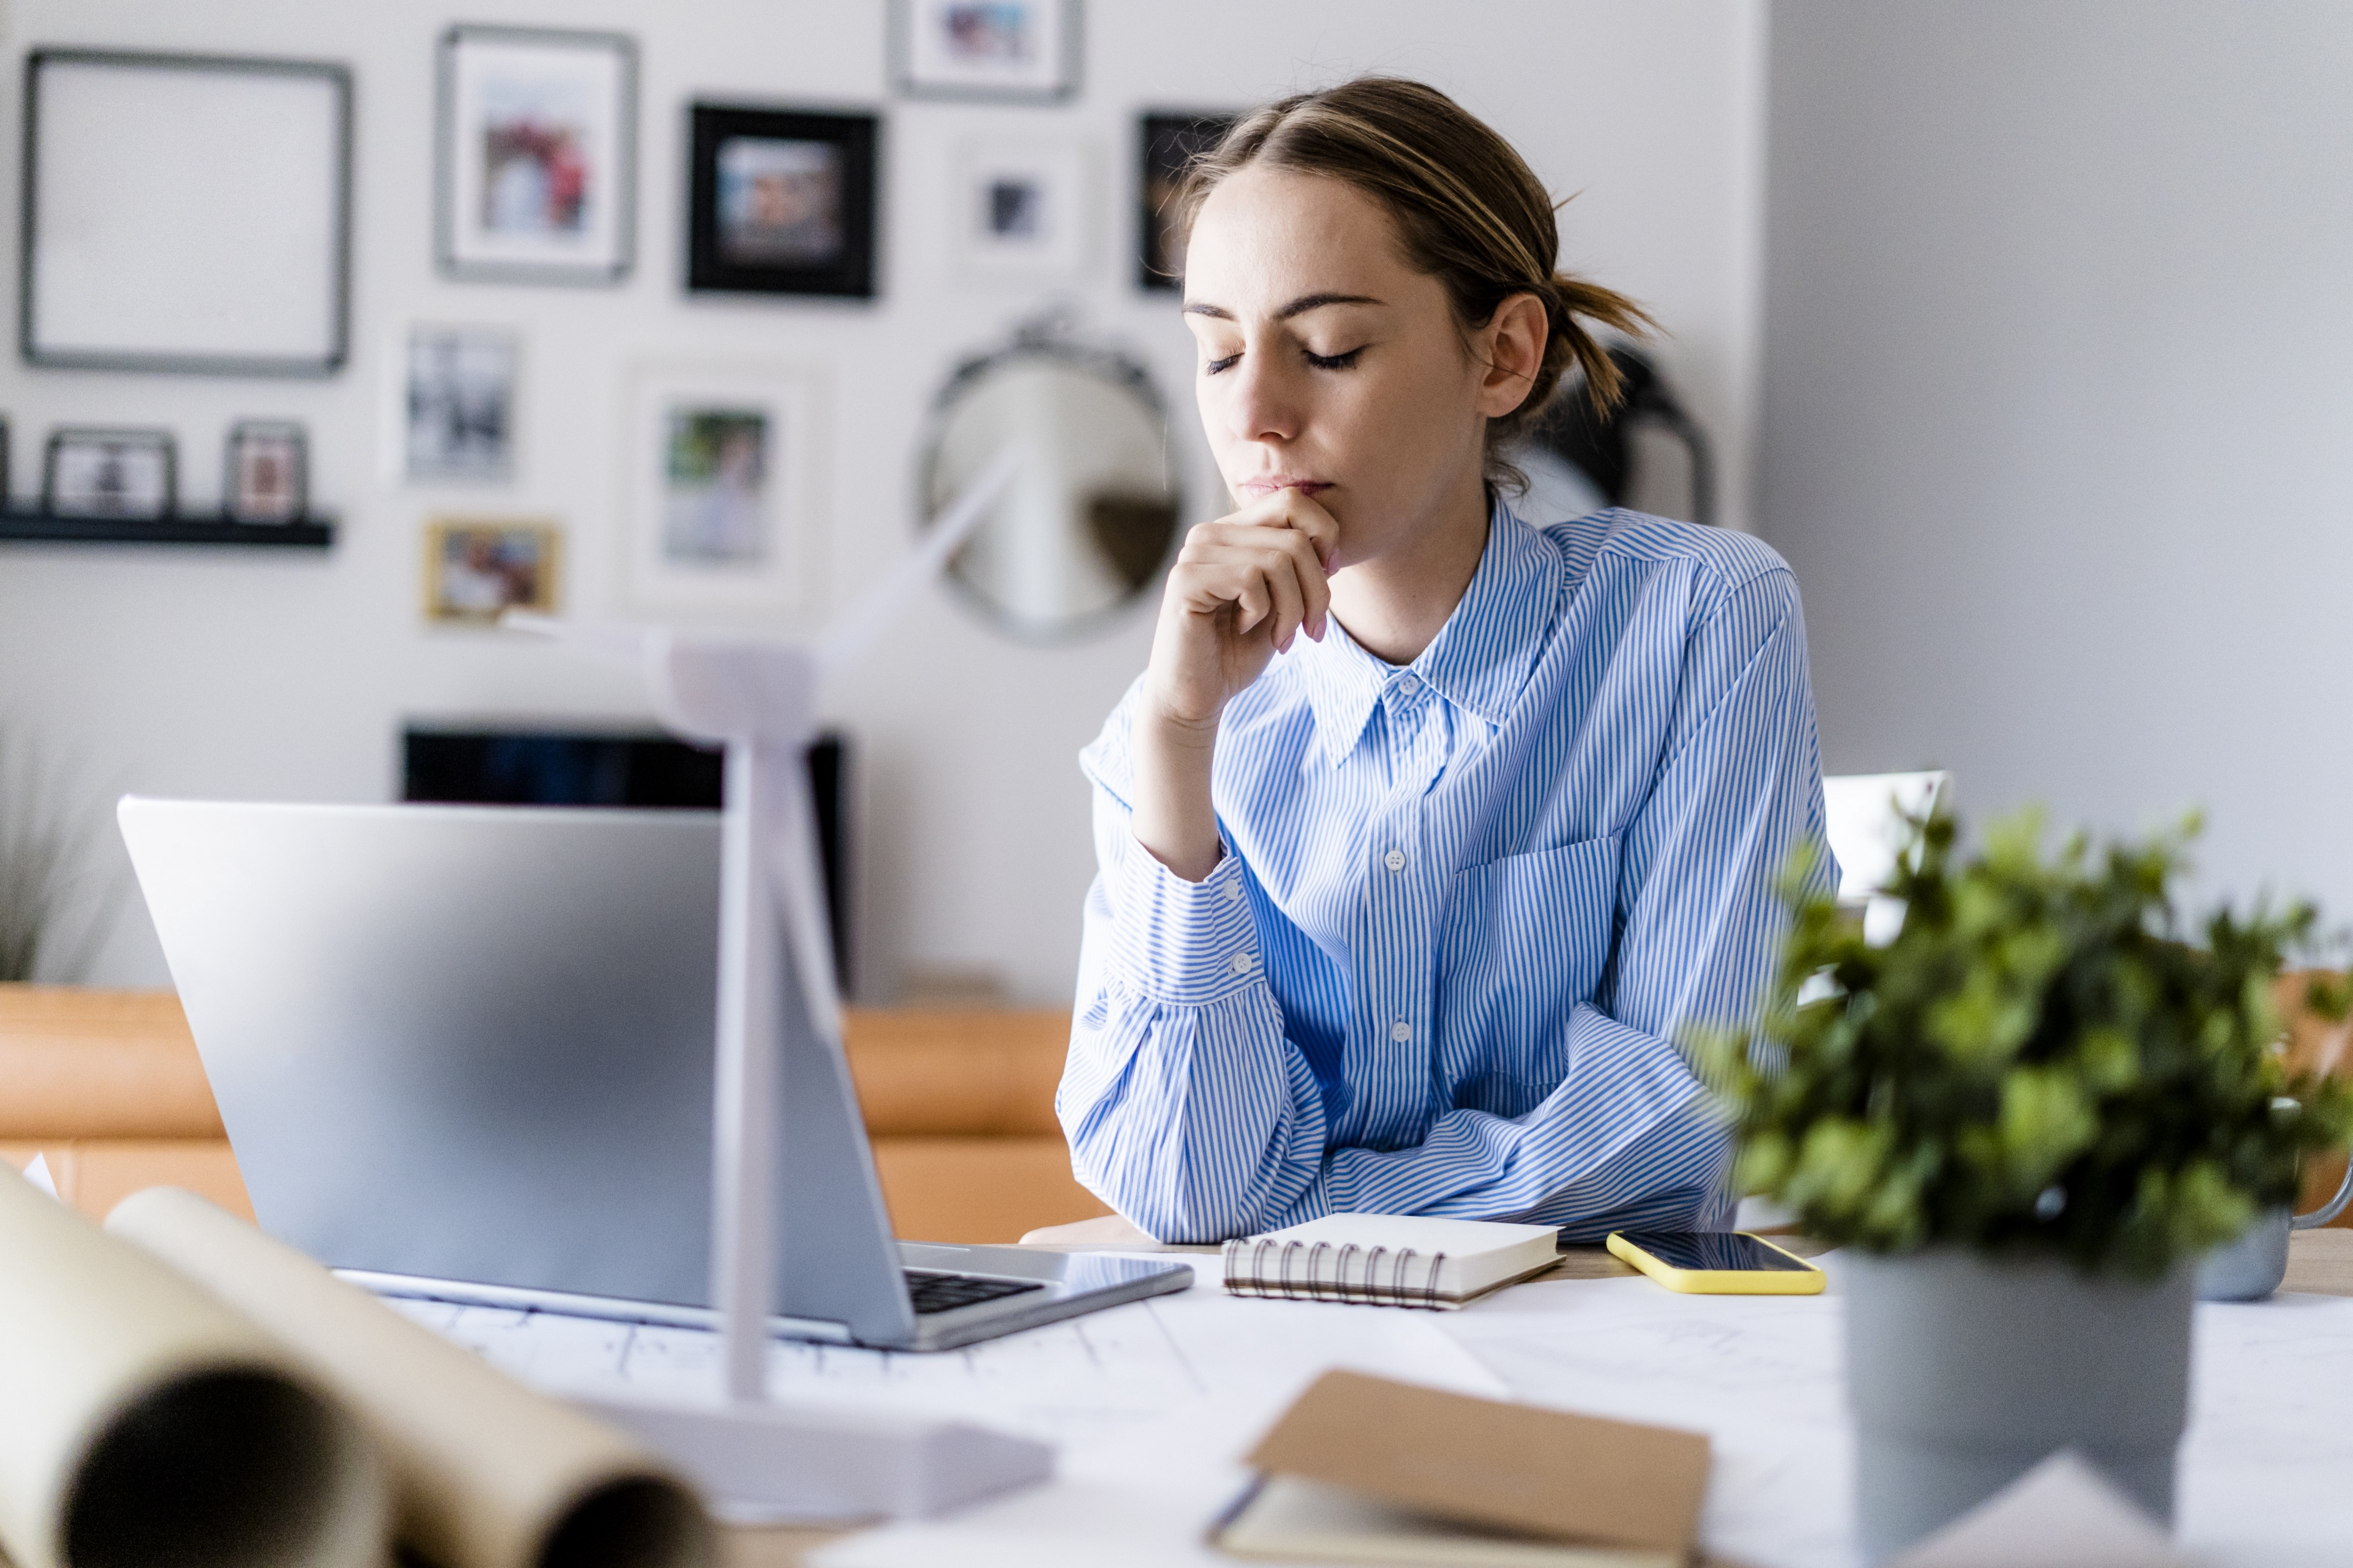 A woman closing her eyes in thought while sitting in front of her laptop at home.